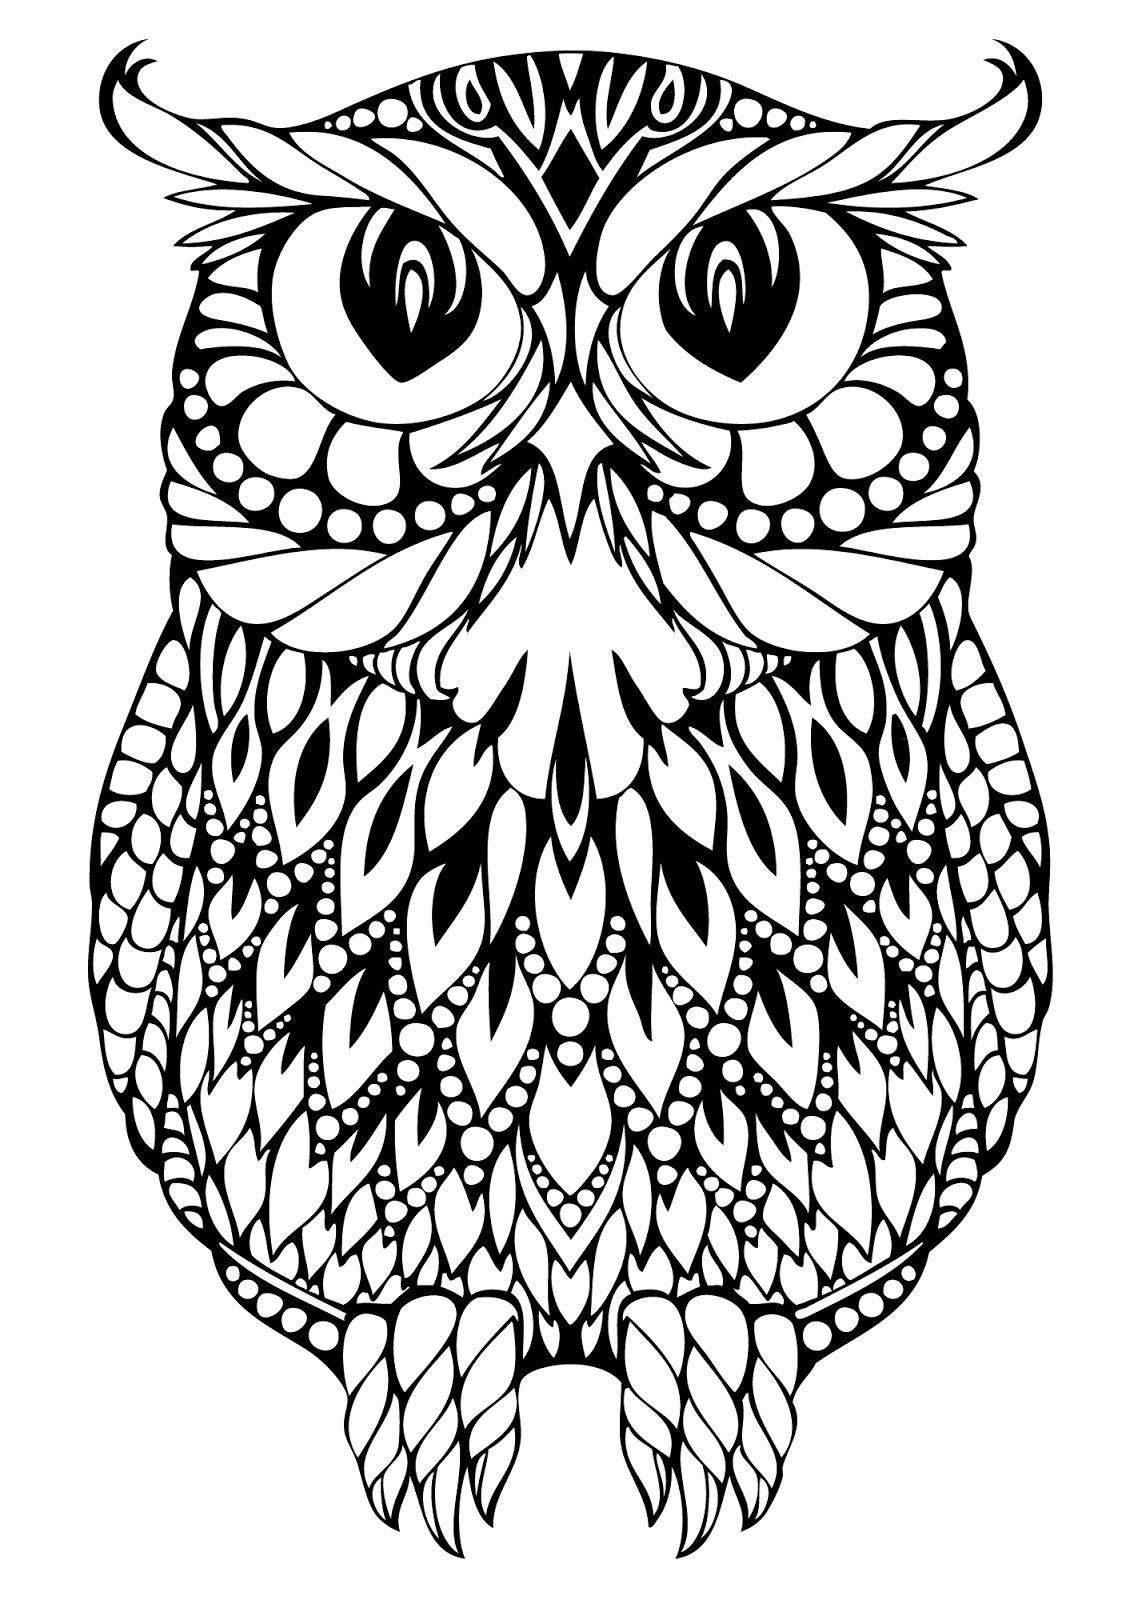 Serendipity Adult Coloring Pages Printable